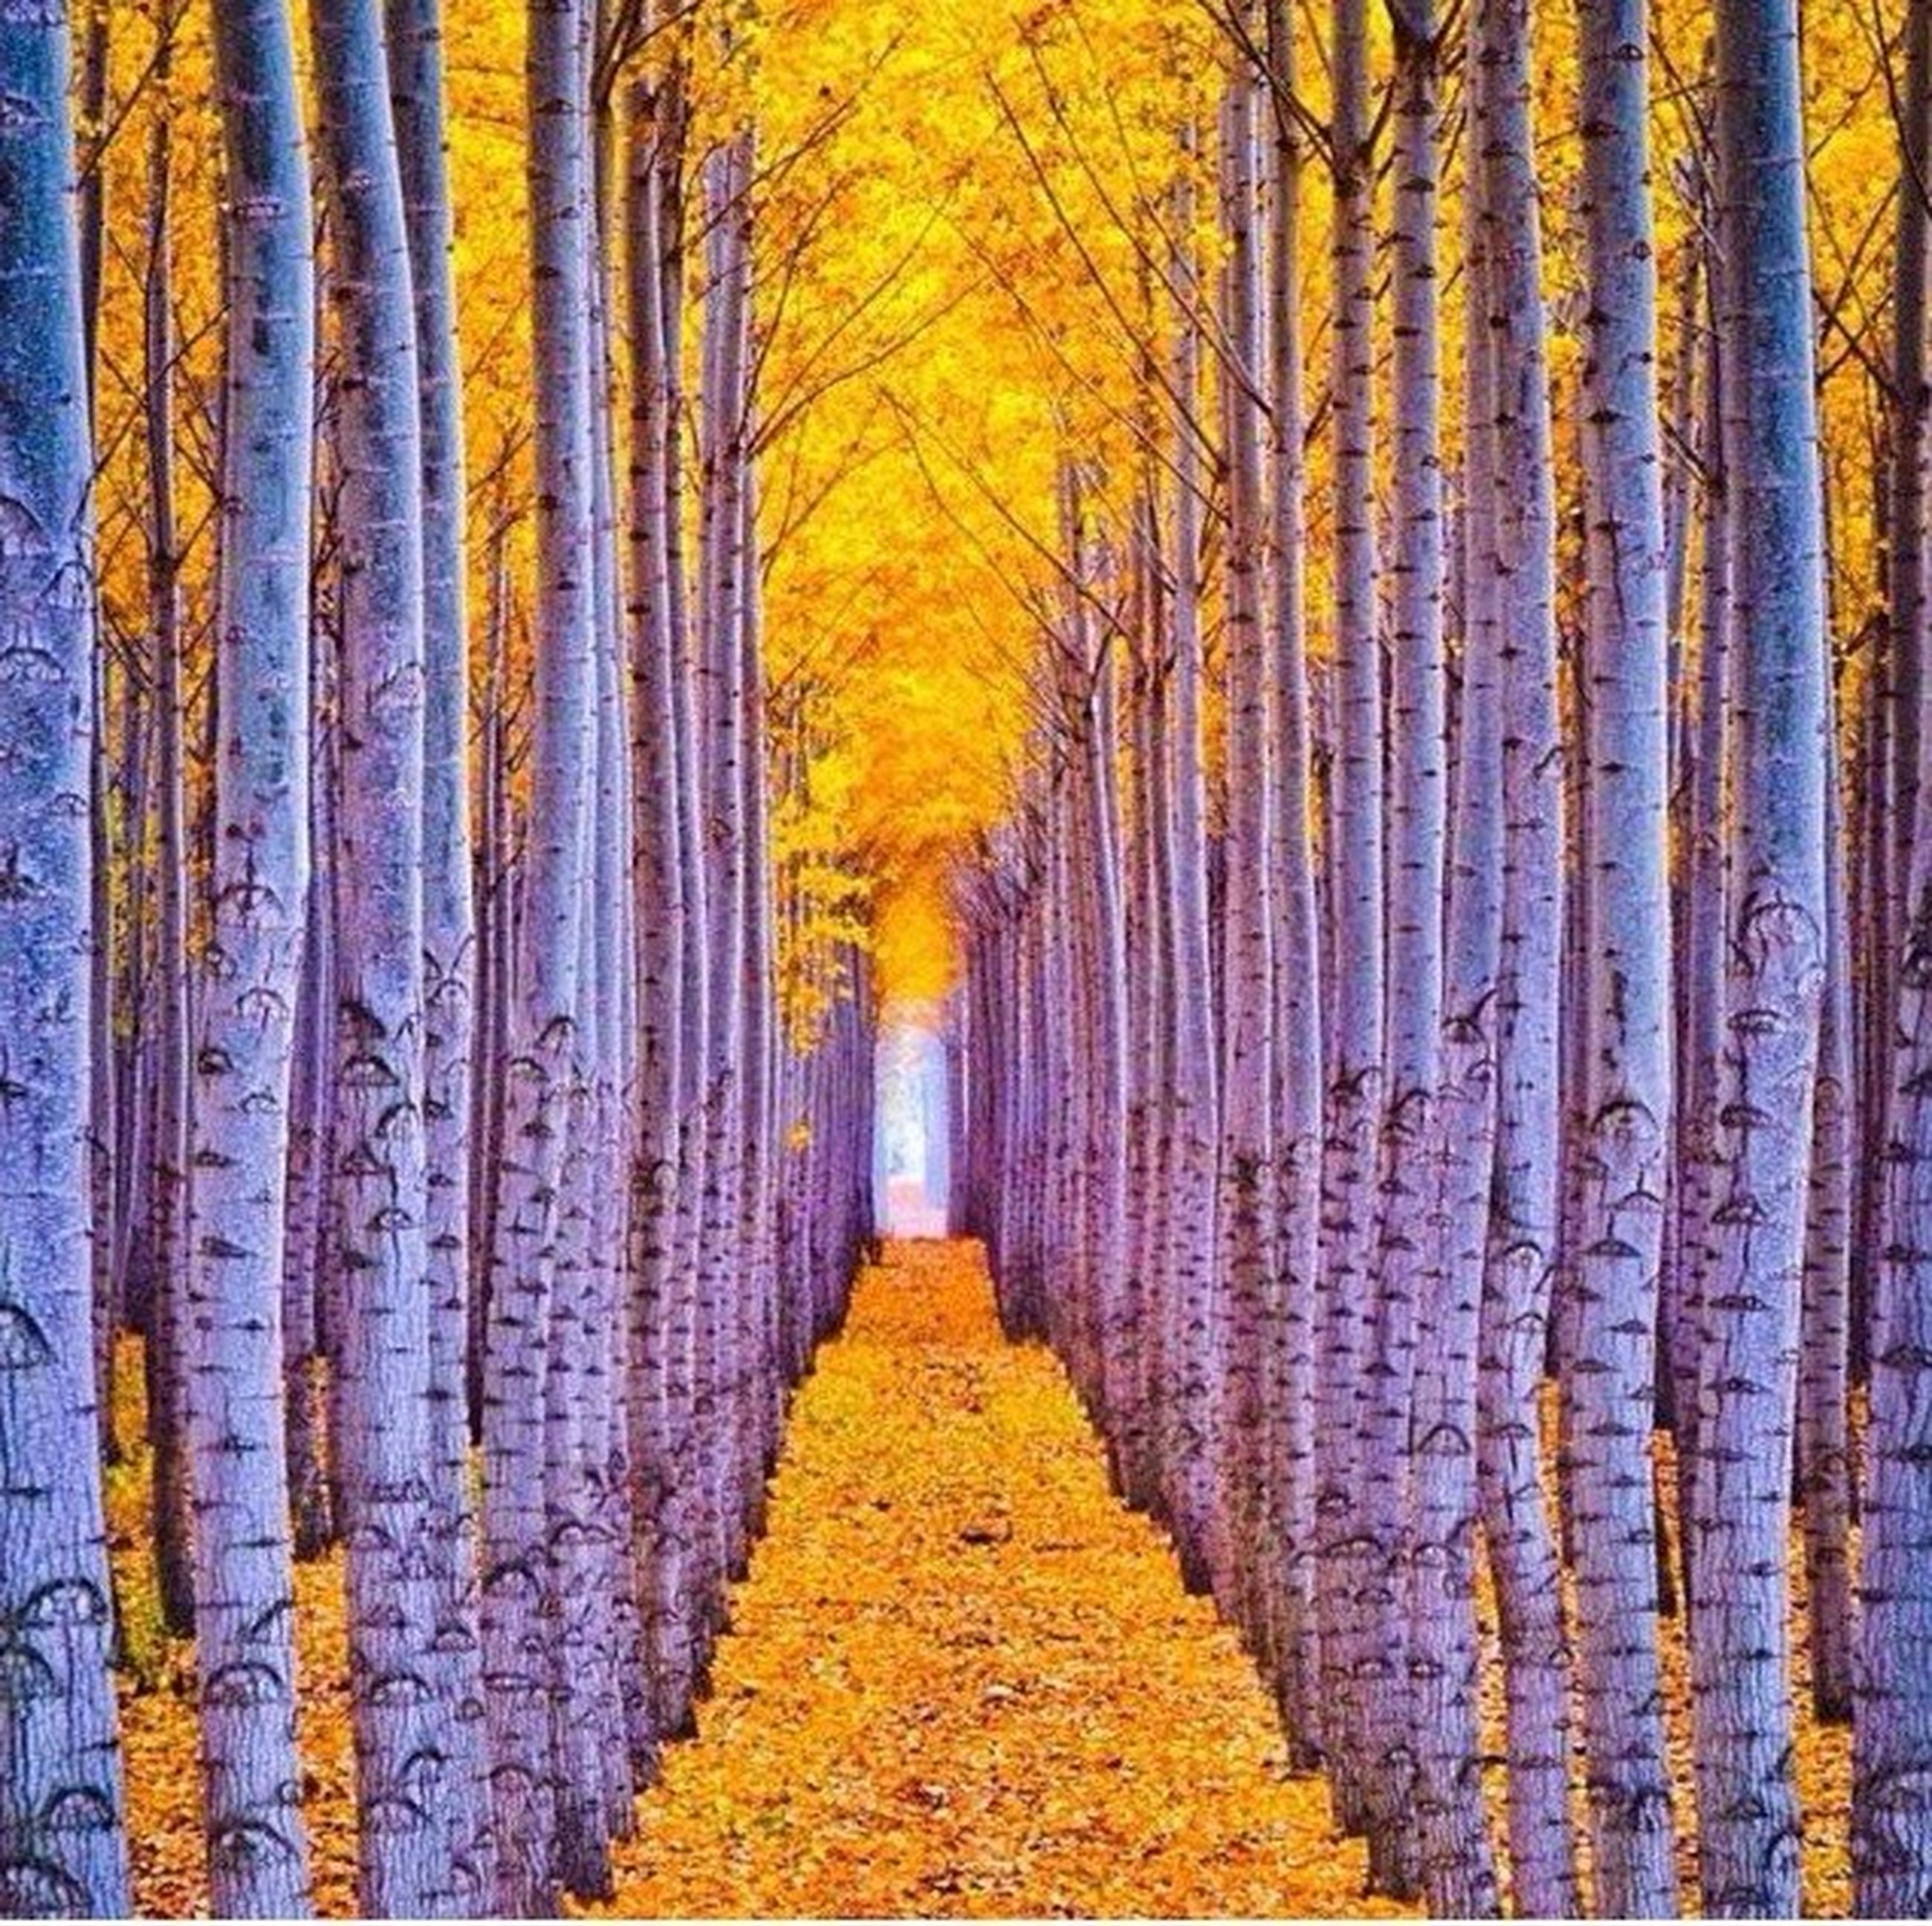 autumn, the way forward, change, yellow, season, tree, diminishing perspective, orange color, vanishing point, in a row, tree trunk, nature, no people, day, tranquility, outdoors, abundance, narrow, footpath, walkway